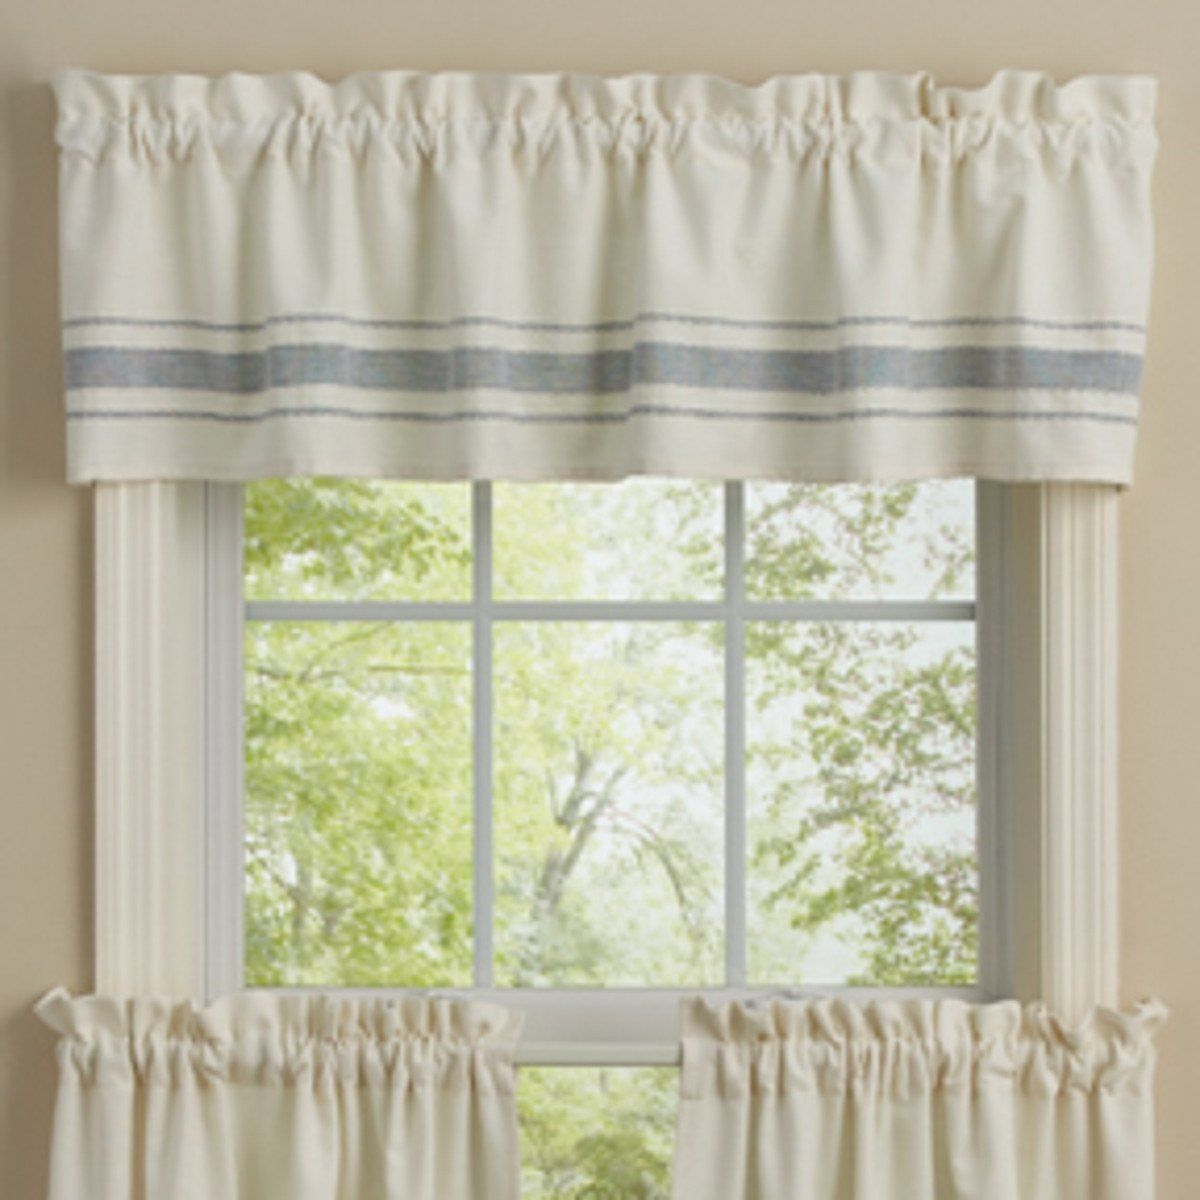 Park Designs Summer Breeze Unlined Valance Country Primitive